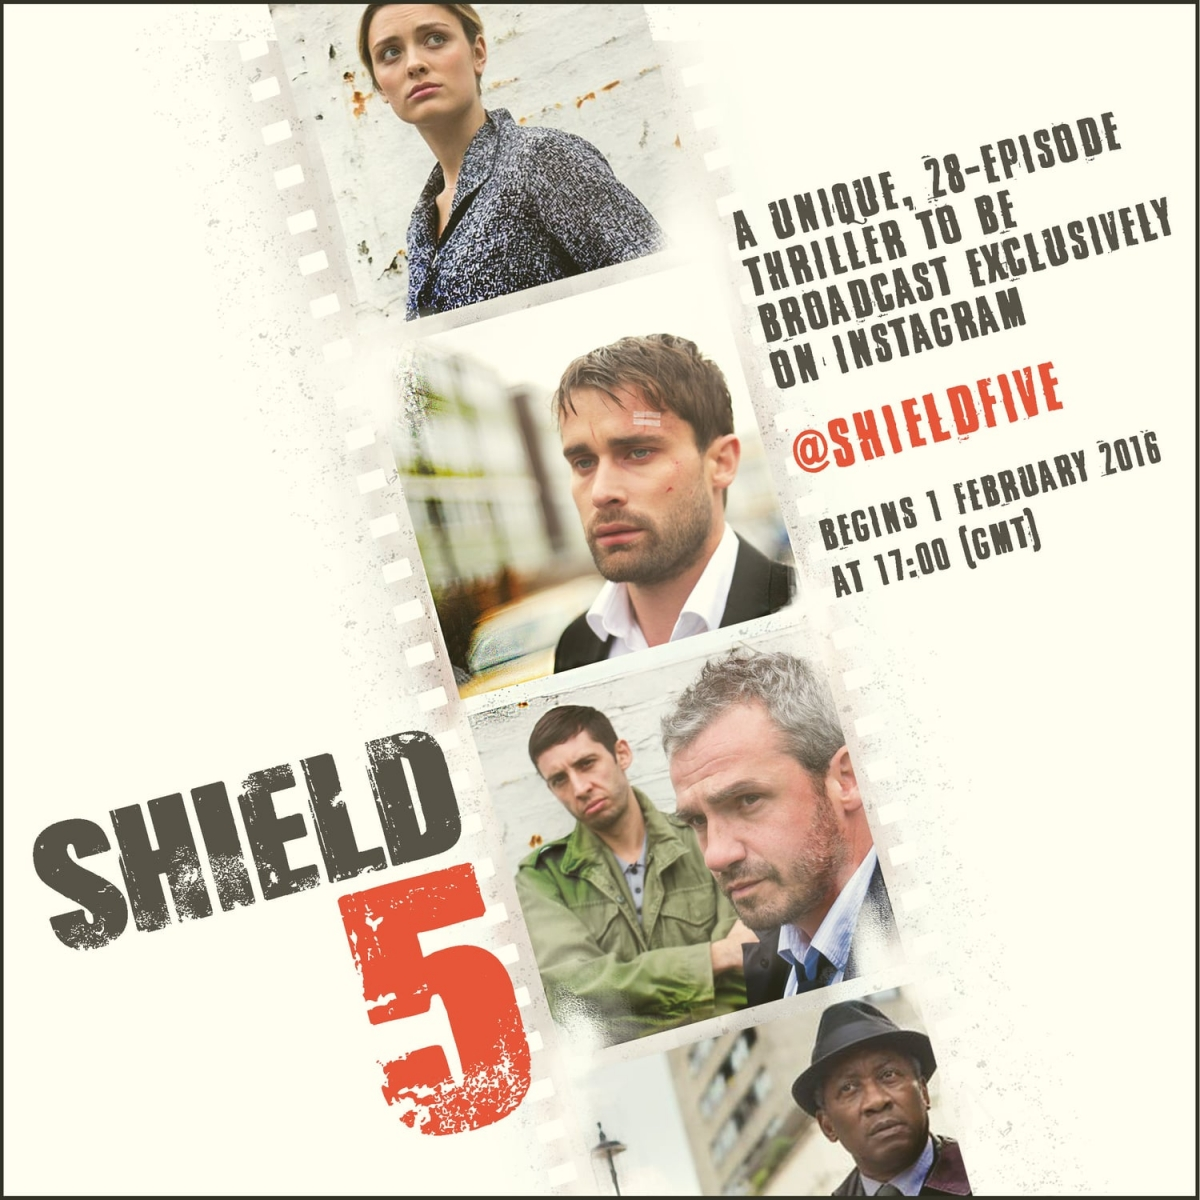 Shield5 comes to Instagram